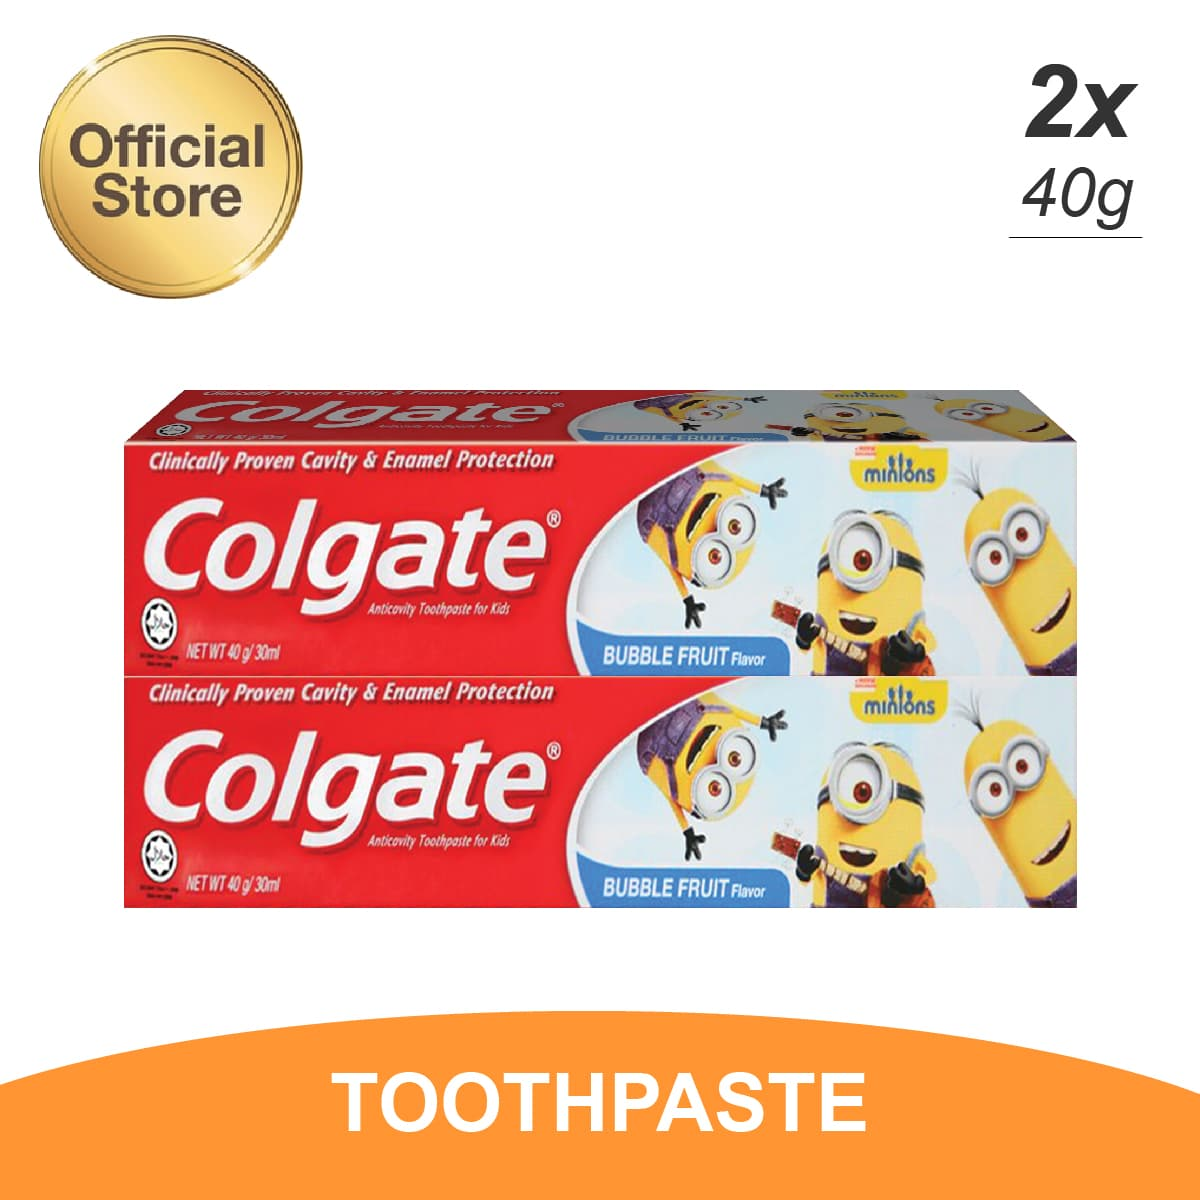 Jual Produk Colgate Palmolive Official Online Termurah Showergel Morninf Tonic 450ml Kids Minions Toothpaste Pasta Gigi 40gr Twin Pack